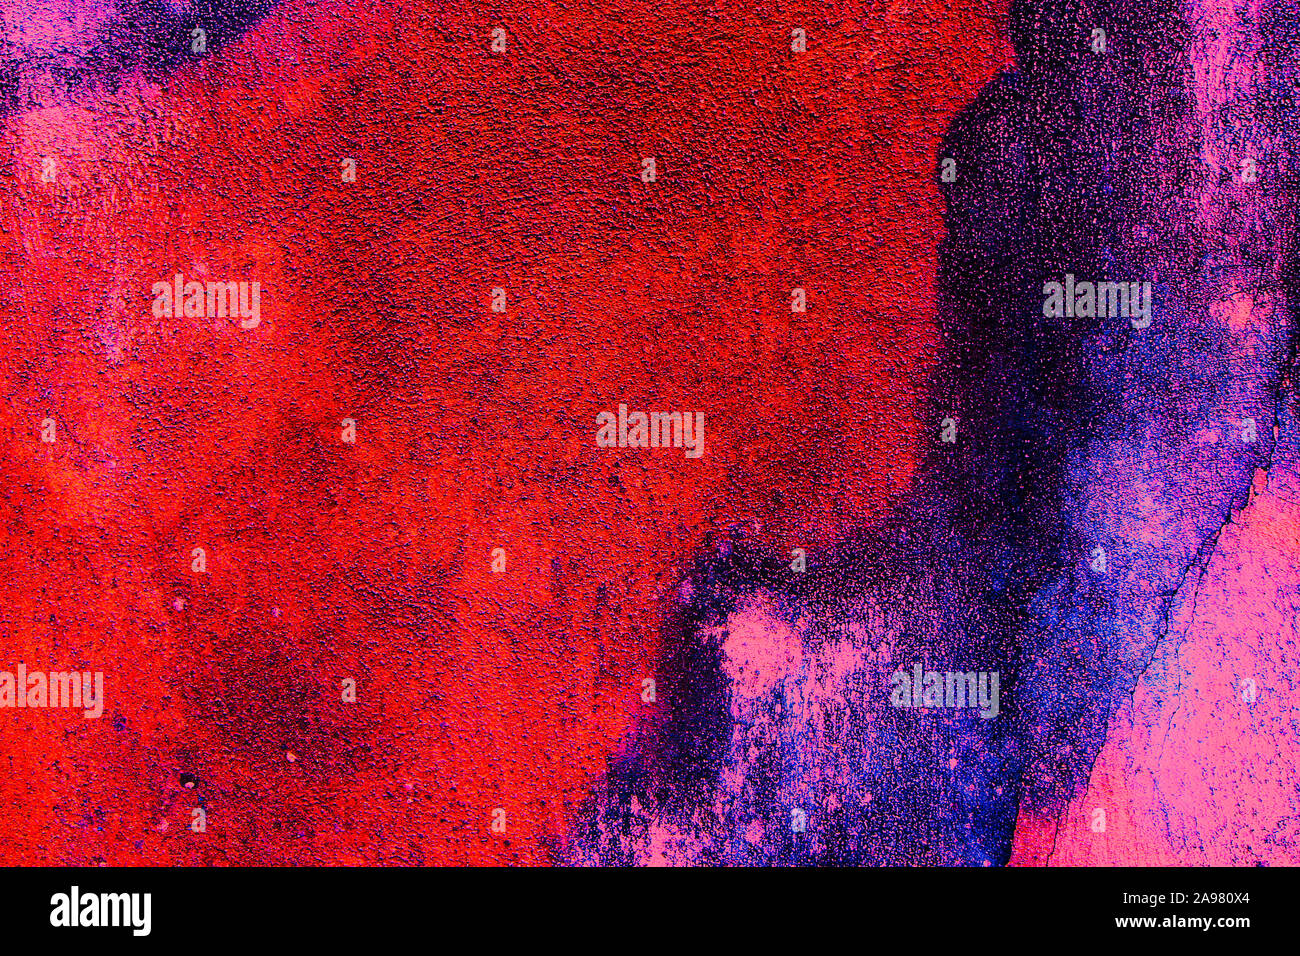 Different Shades Of Pink High Resolution Stock Photography And Images Alamy